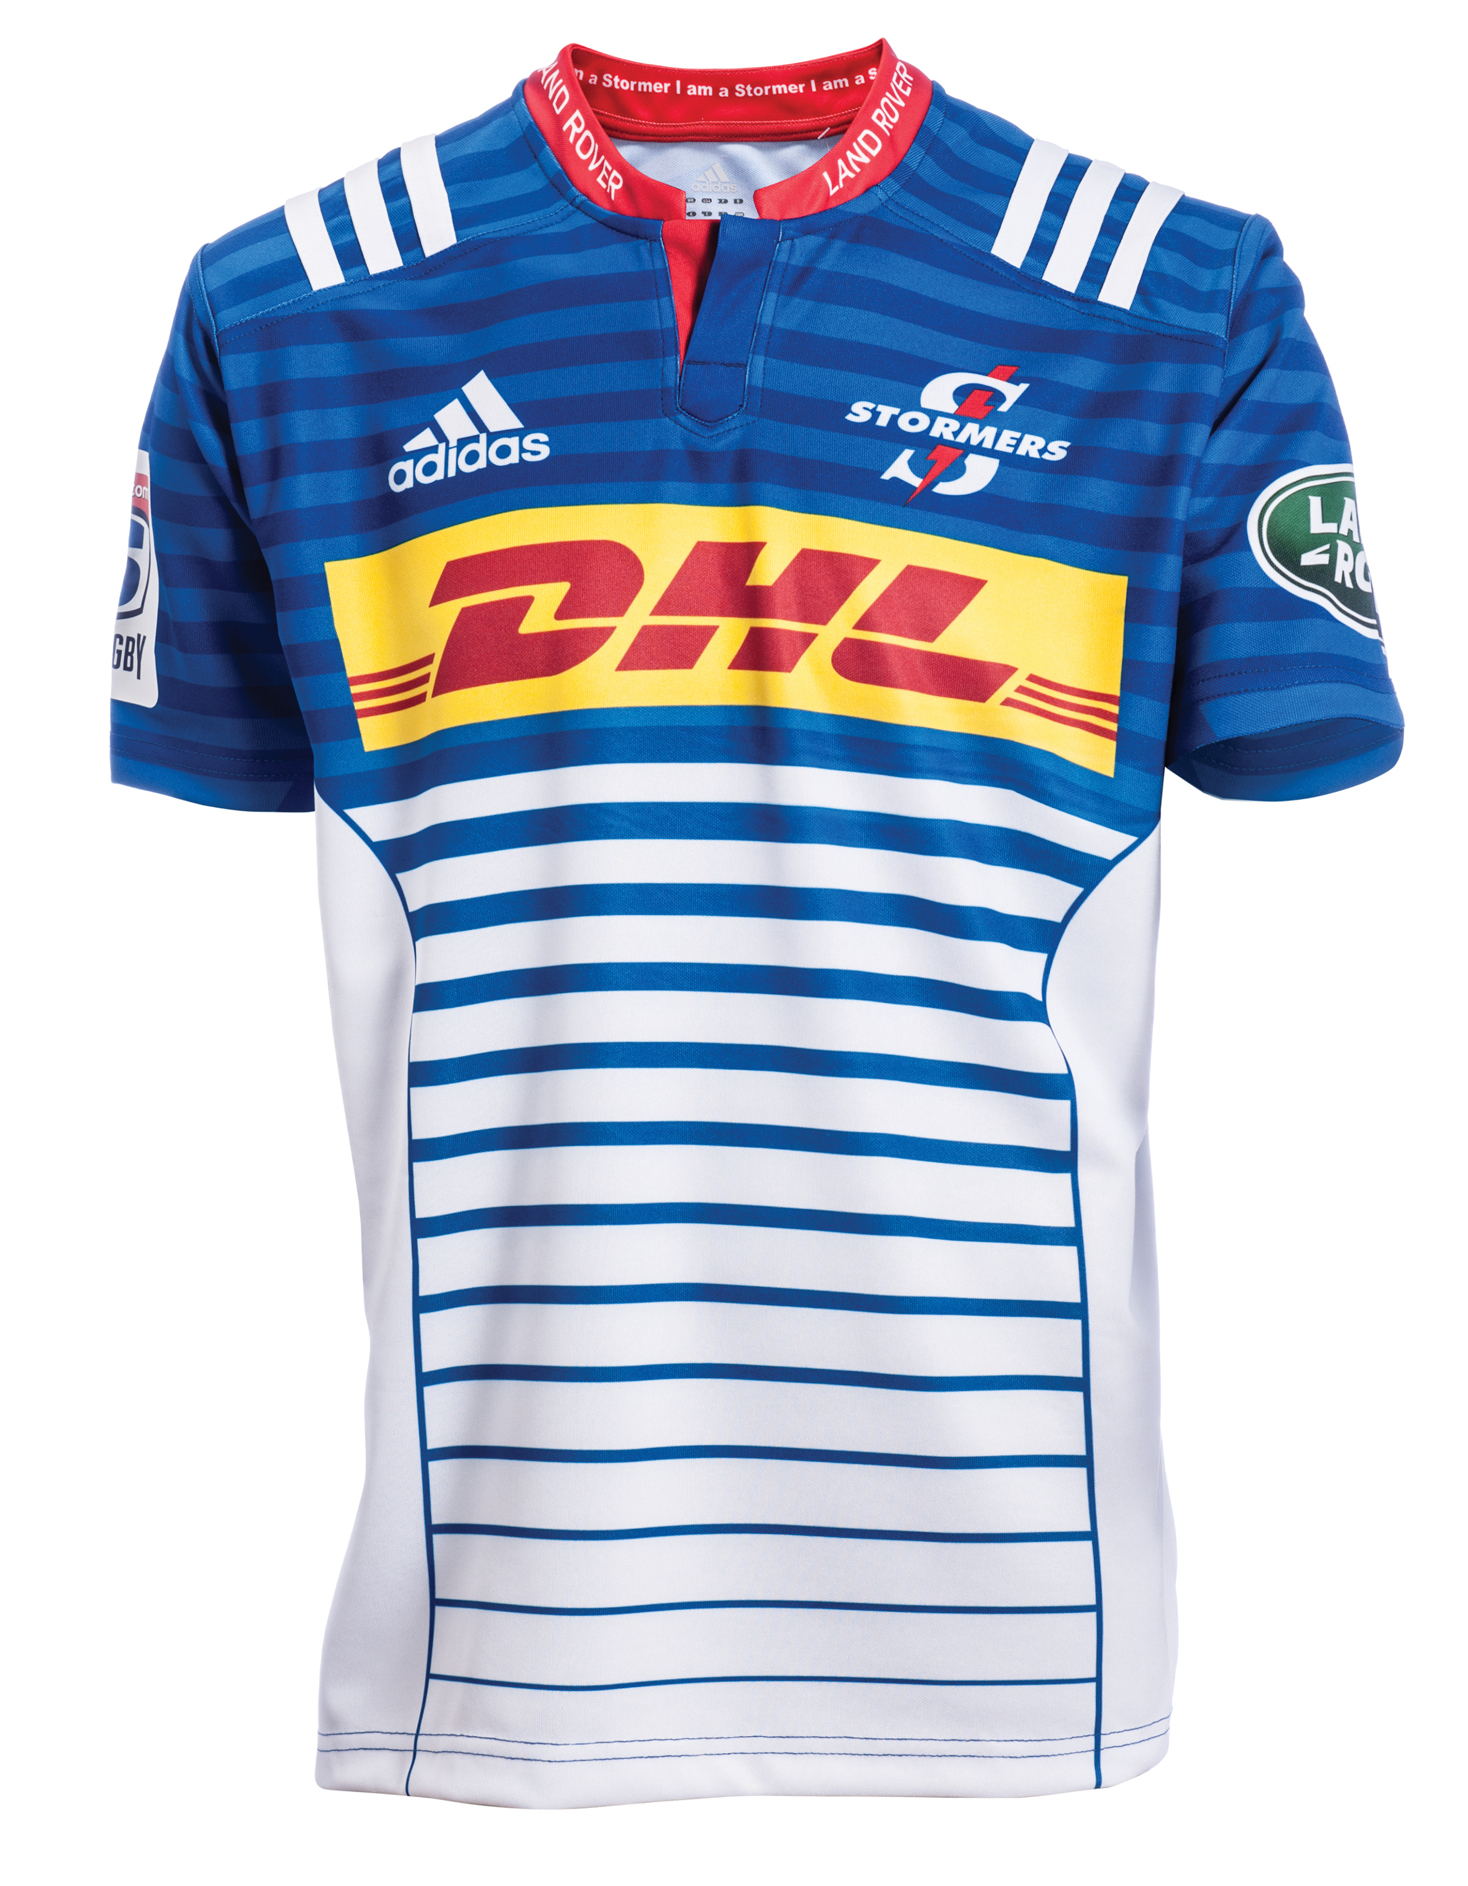 – 2016 Rugby Adidas Shirts Away Dhl Stormers Homeamp; Super OlwXZiPTku